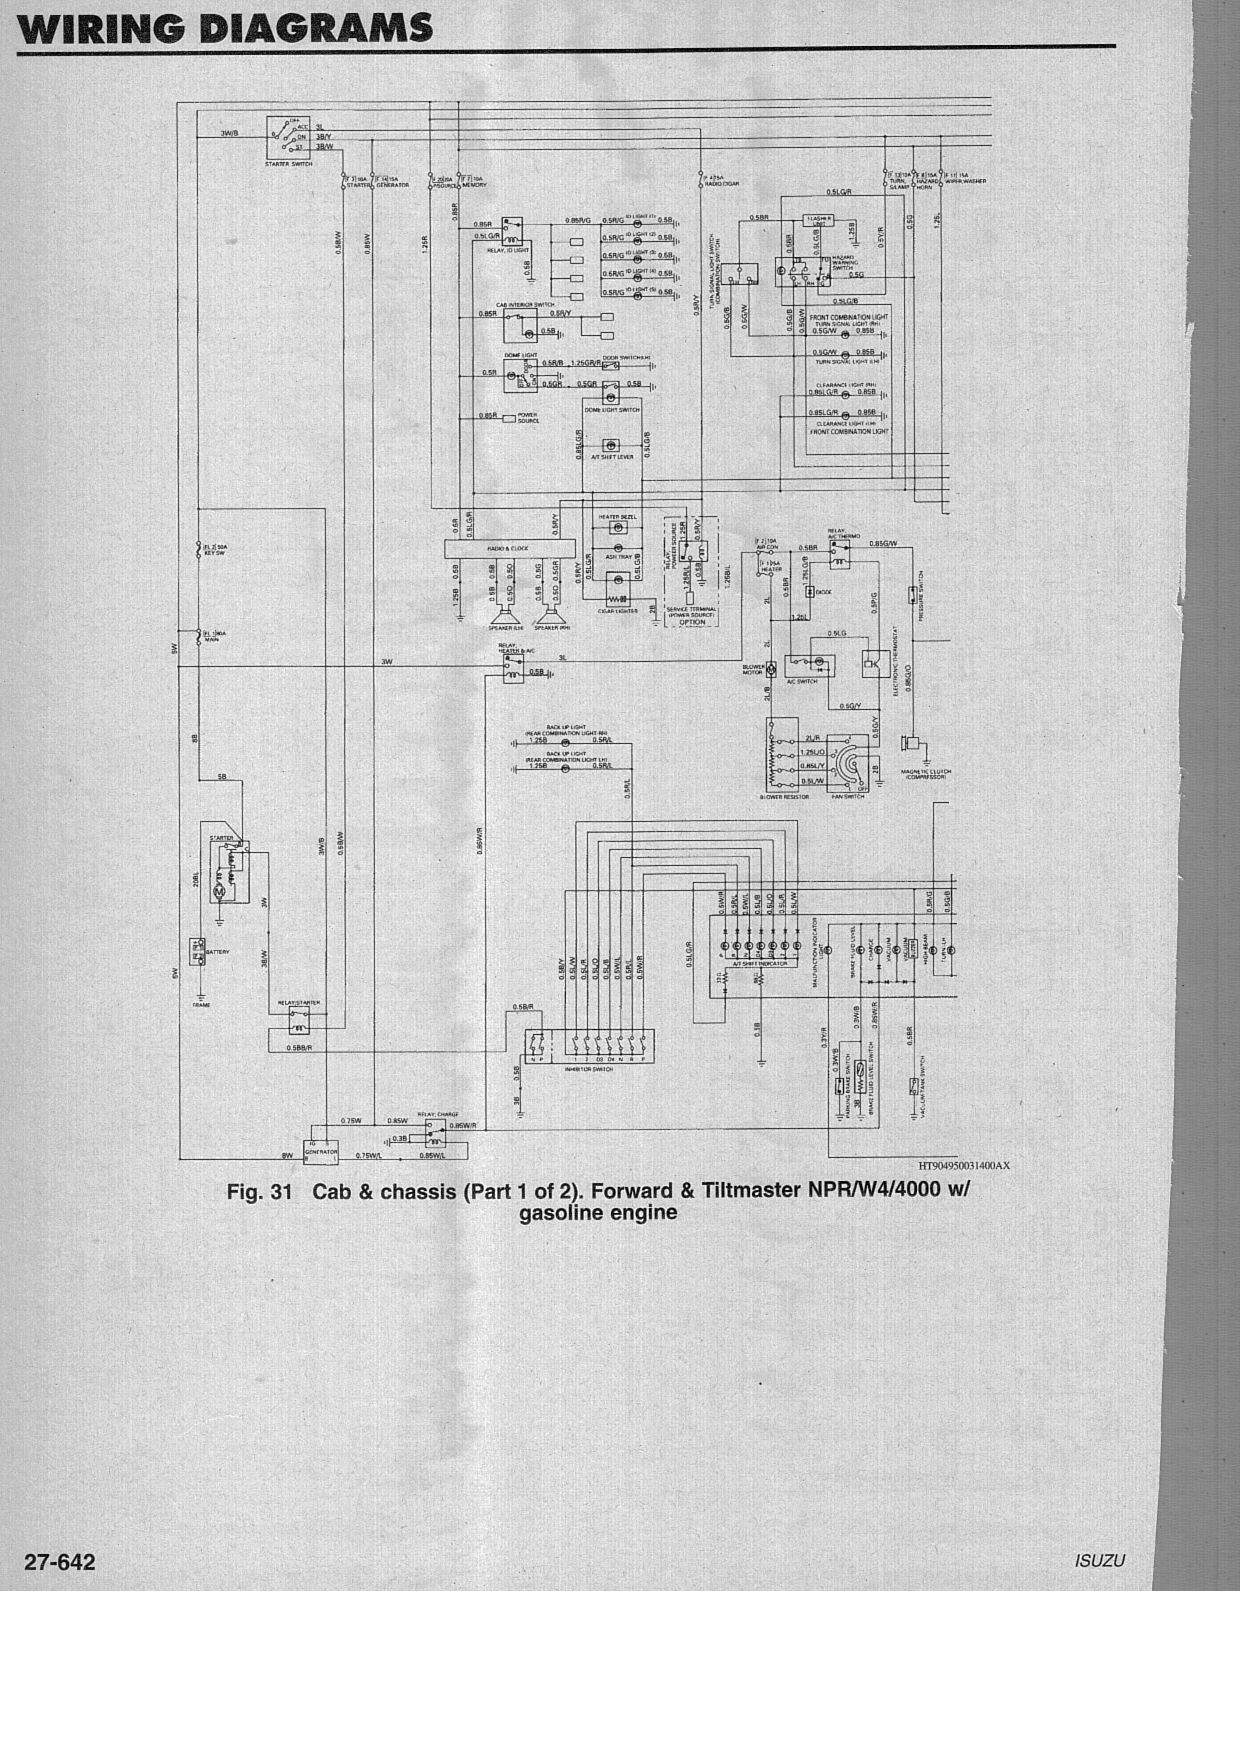 2009 06 21_140331_Isuzu_npr_gas_wiring_pg1 wiring diagrams gm isuzu 1995 1 2 w4 4000 npr (gasoline) isuzu npr tail light wiring diagram at gsmportal.co